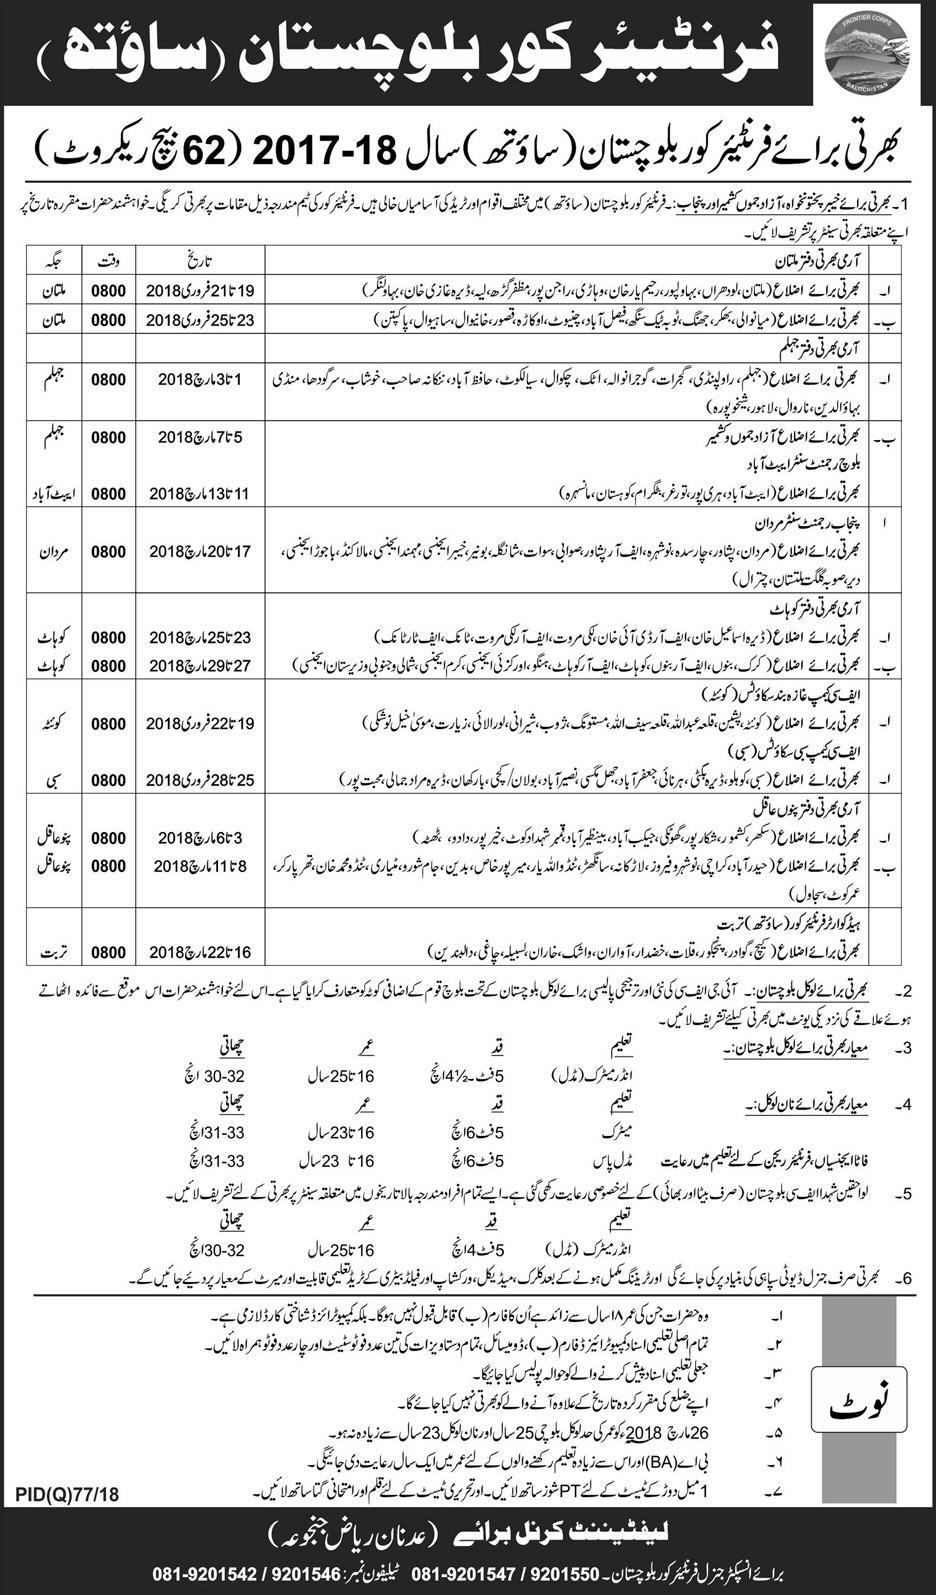 Baluchistan Frontier Core New Jobs, 11 February 2018, Daily Express Newspaper